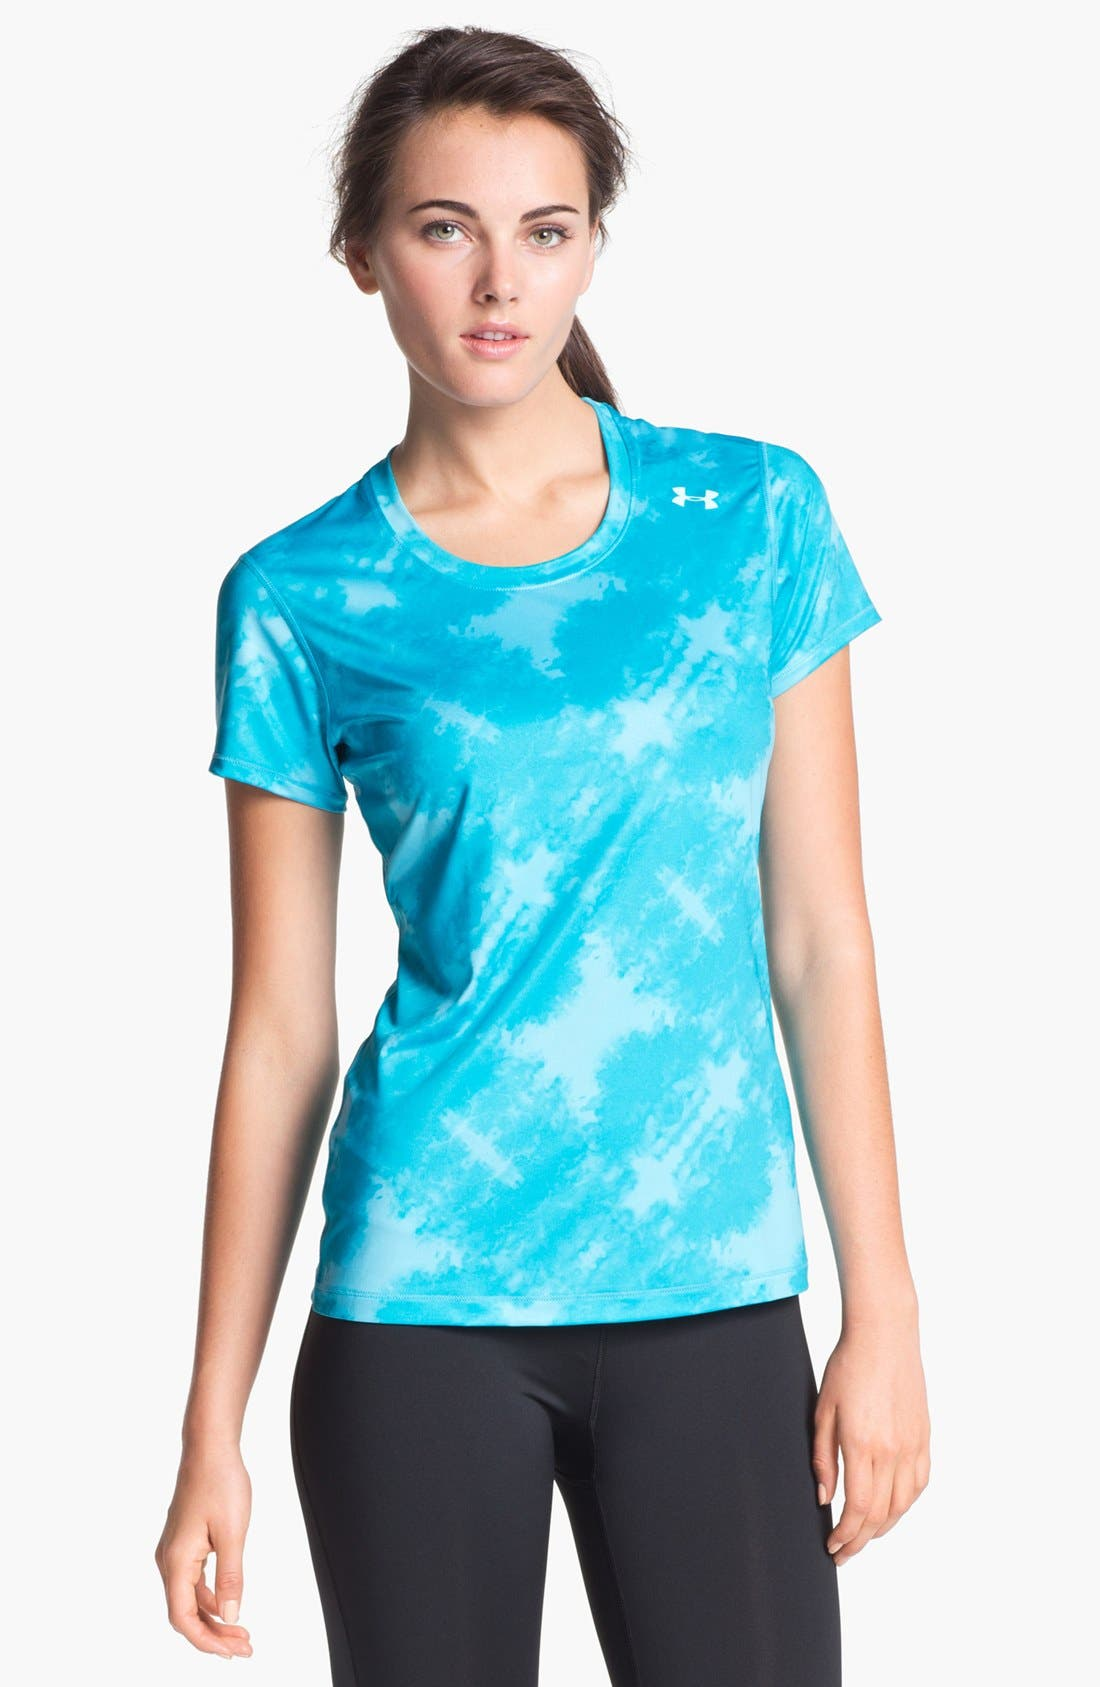 Alternate Image 1 Selected - Under Armour 'Hot Shot' Print Tee